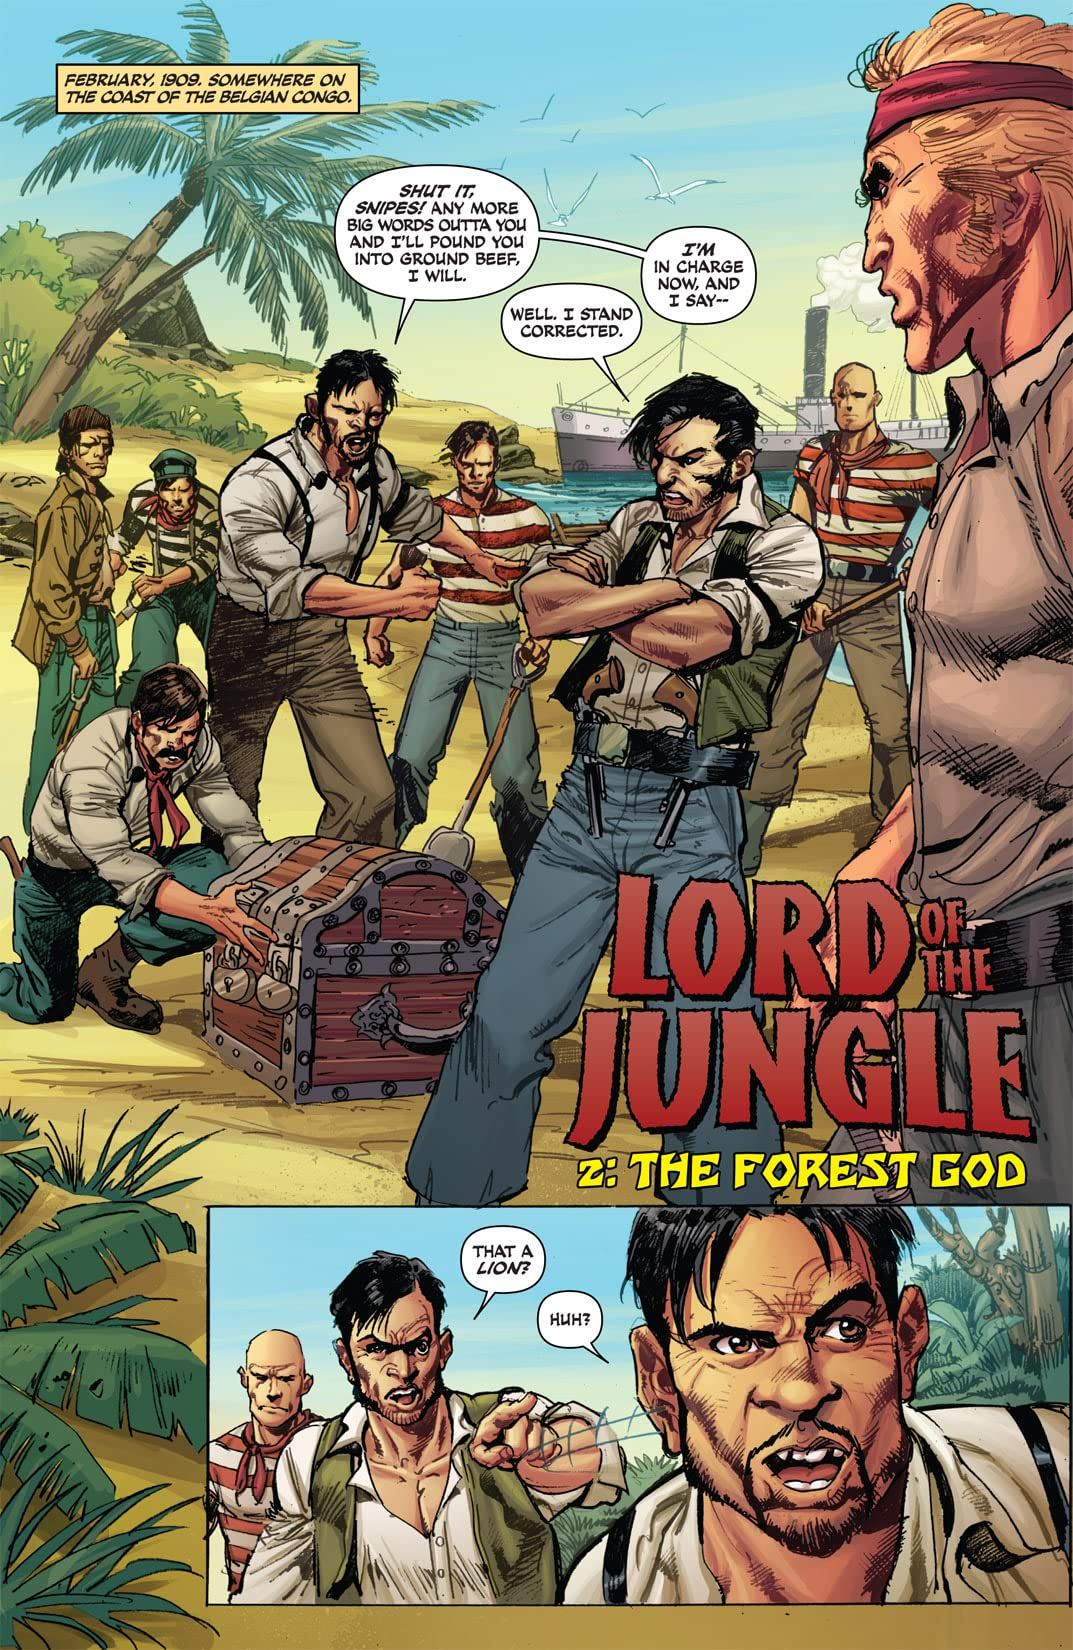 Lord of the Jungle #2